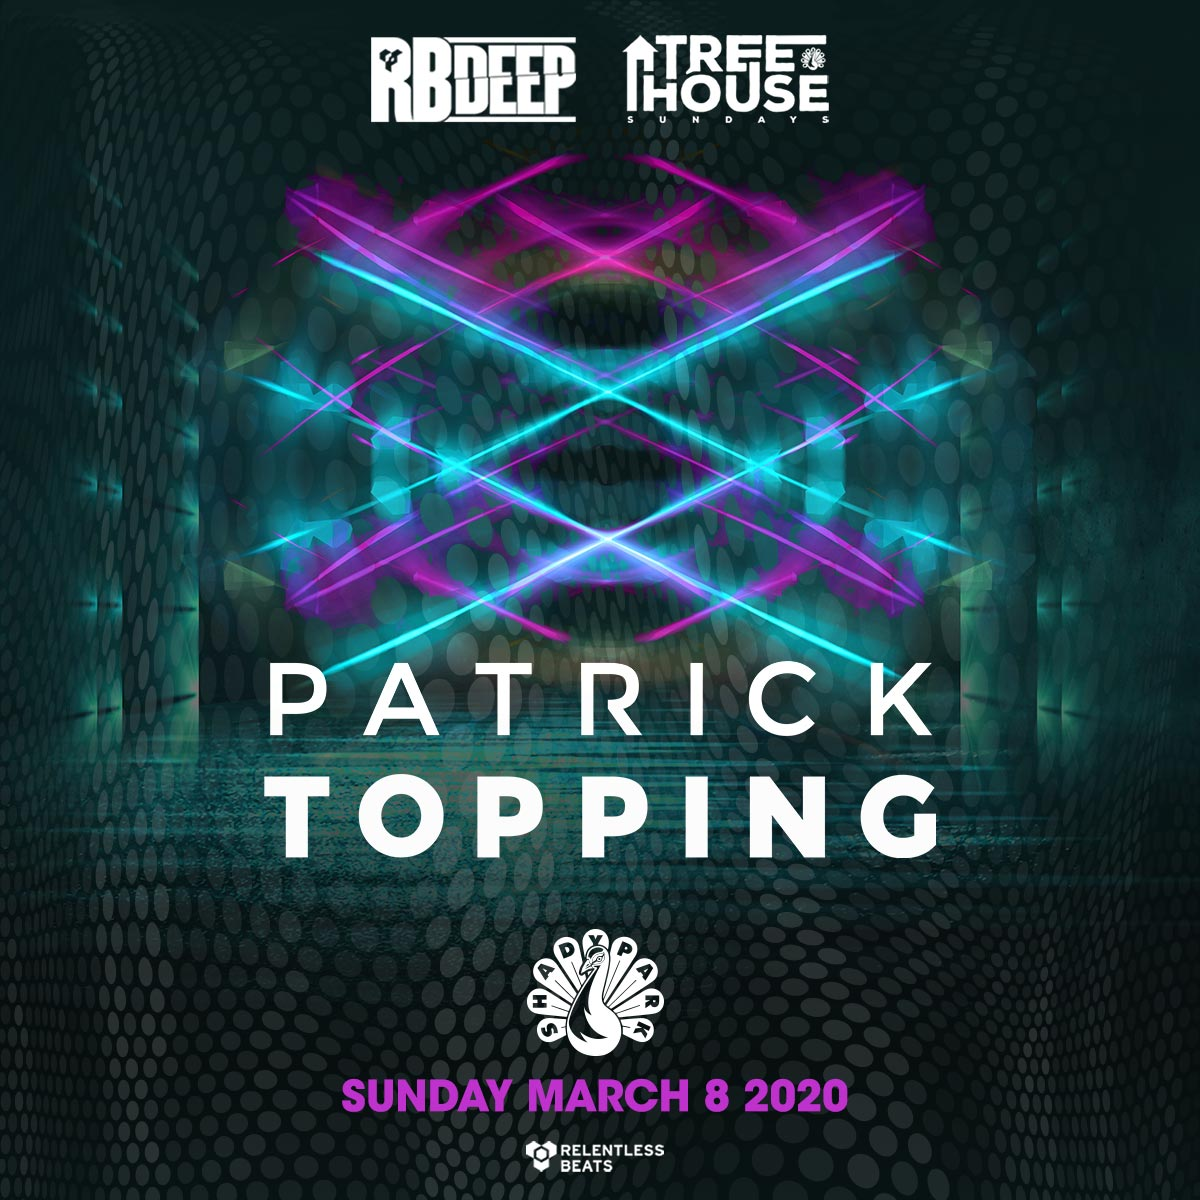 Flyer for Patrick Topping